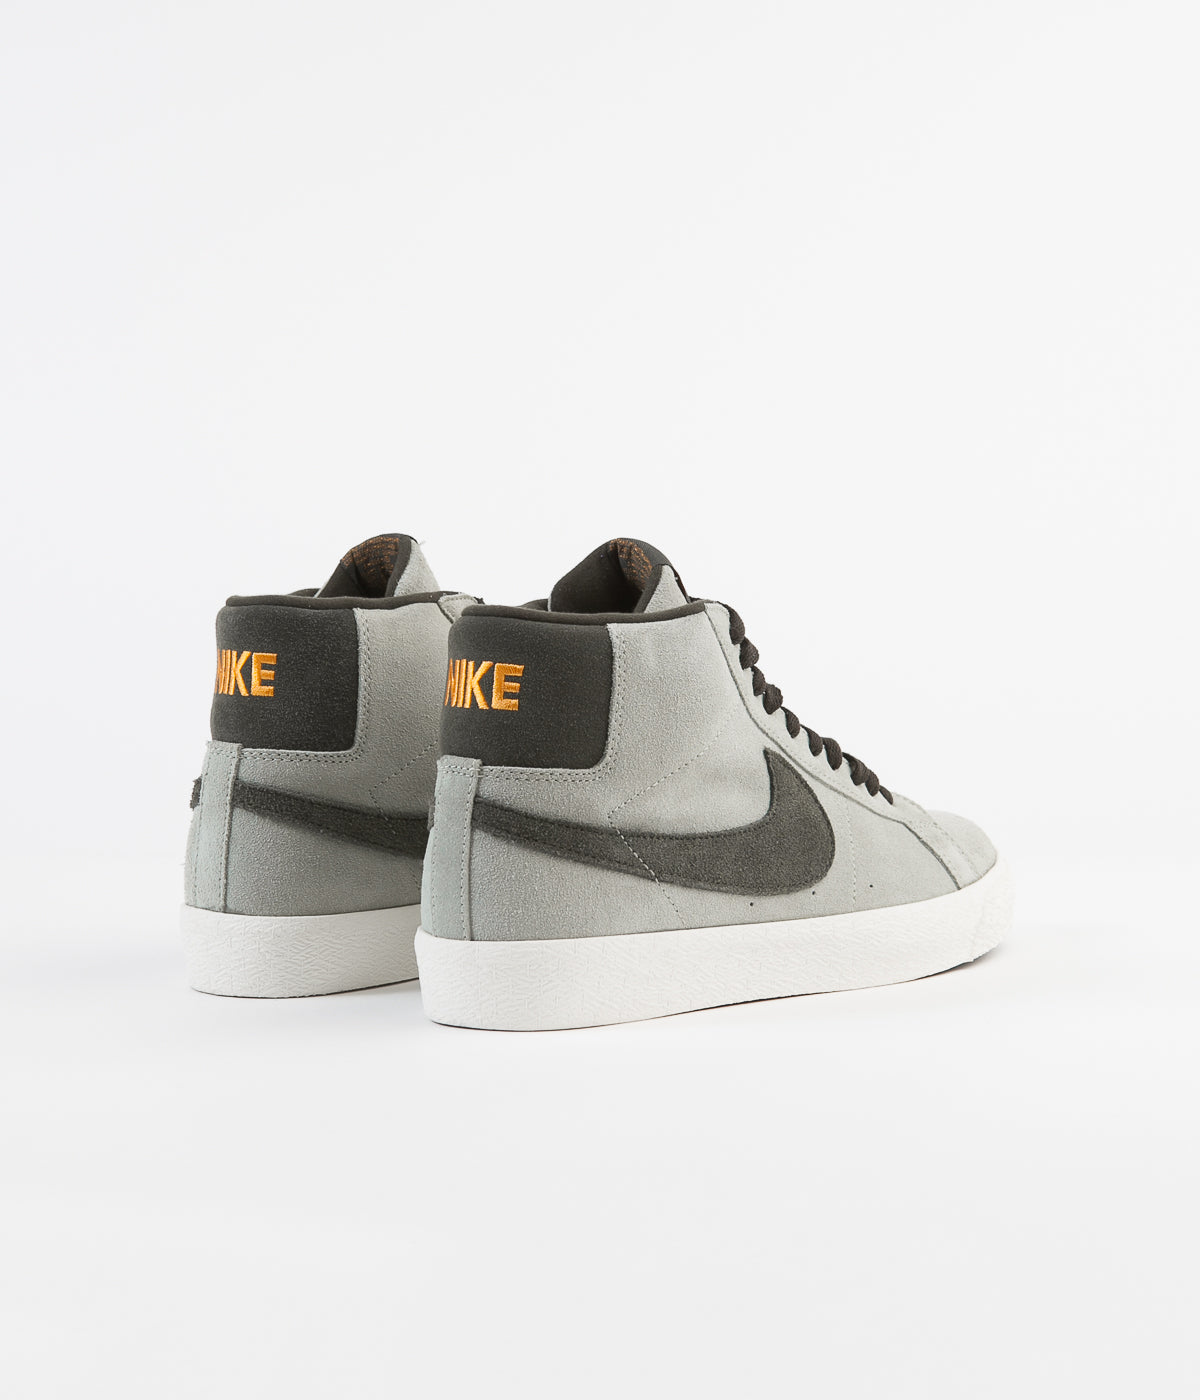 Nike SB Blazer Mid Shoes - Jade Horizon / Sequoia